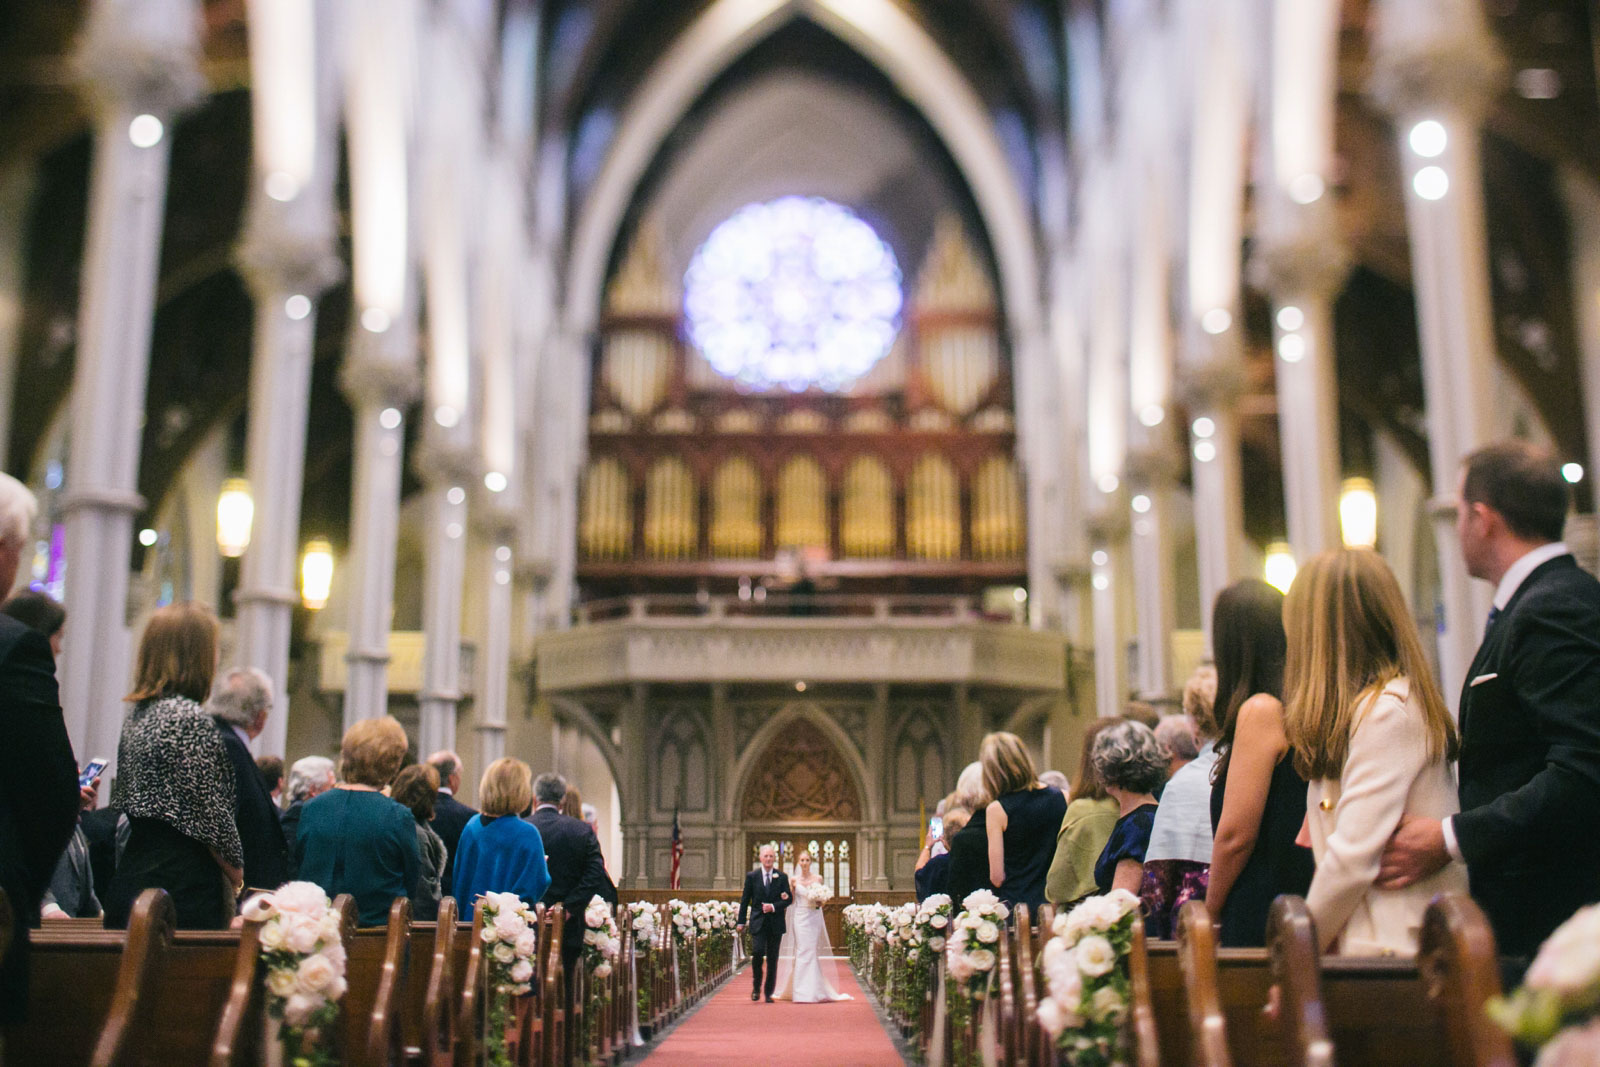 bride walking down aisle of giant cathedral in south end with pillars and stained glass